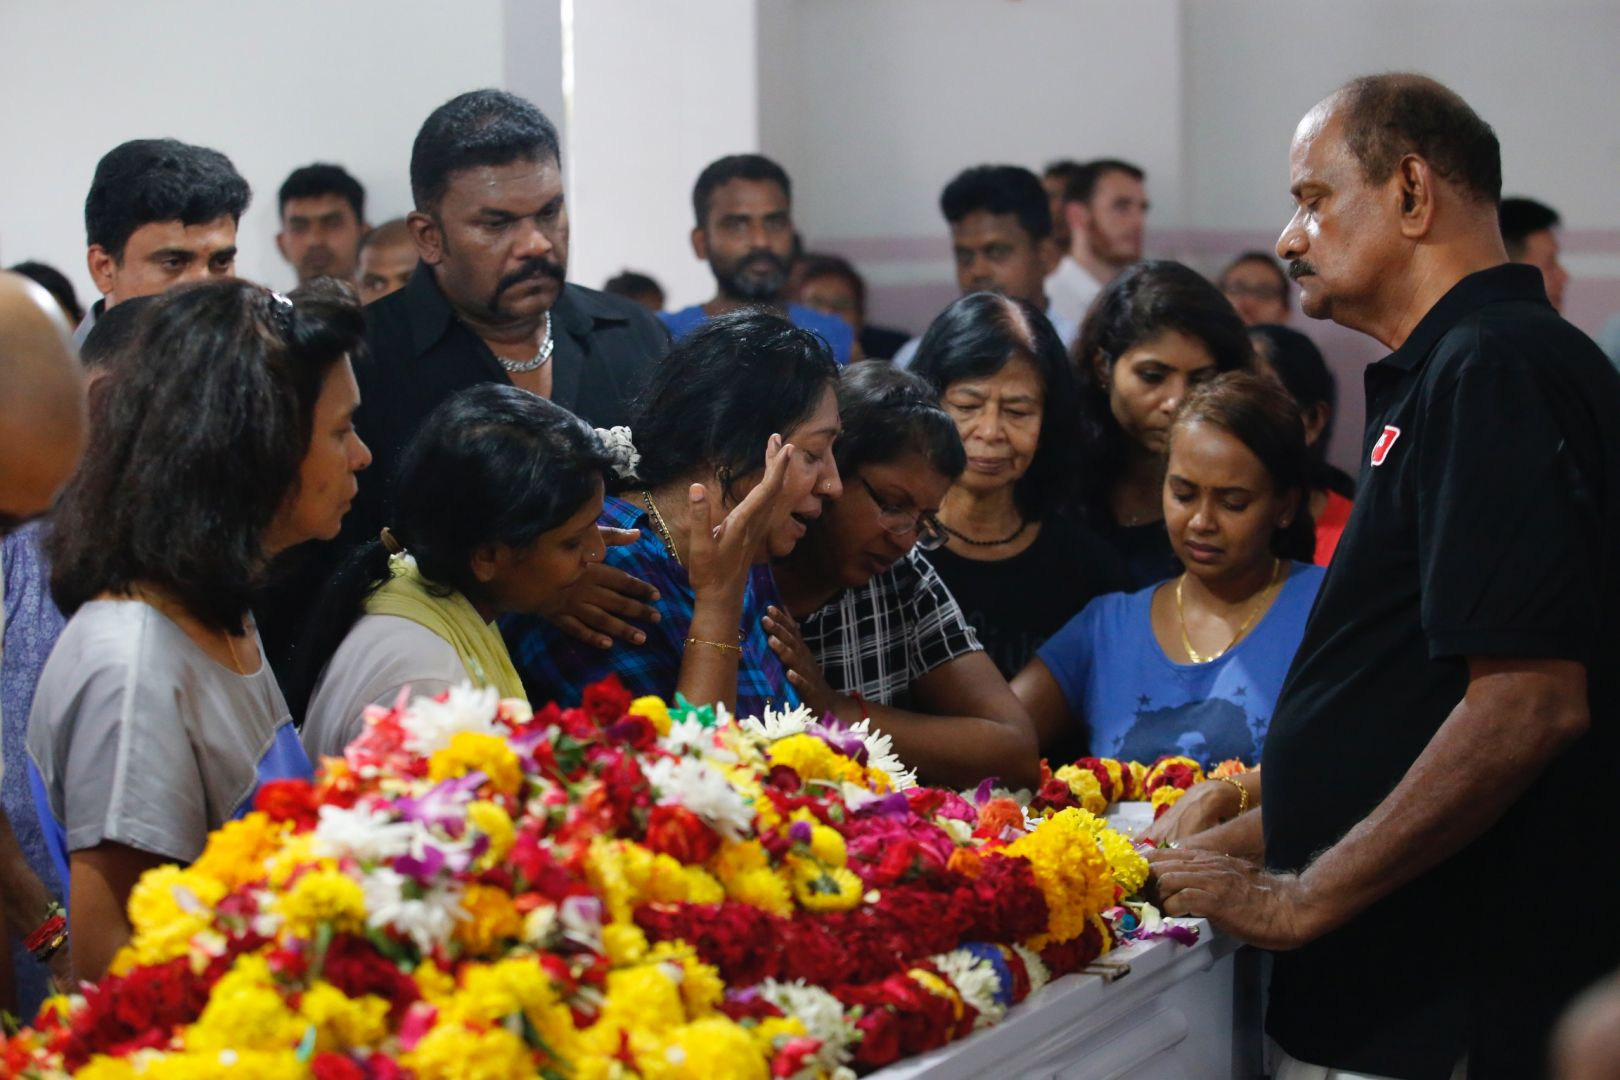 Family members and friends of Pradip Subramanian at the wake of the 32-year-old. — Picture by Najeer Yusof/TODAY